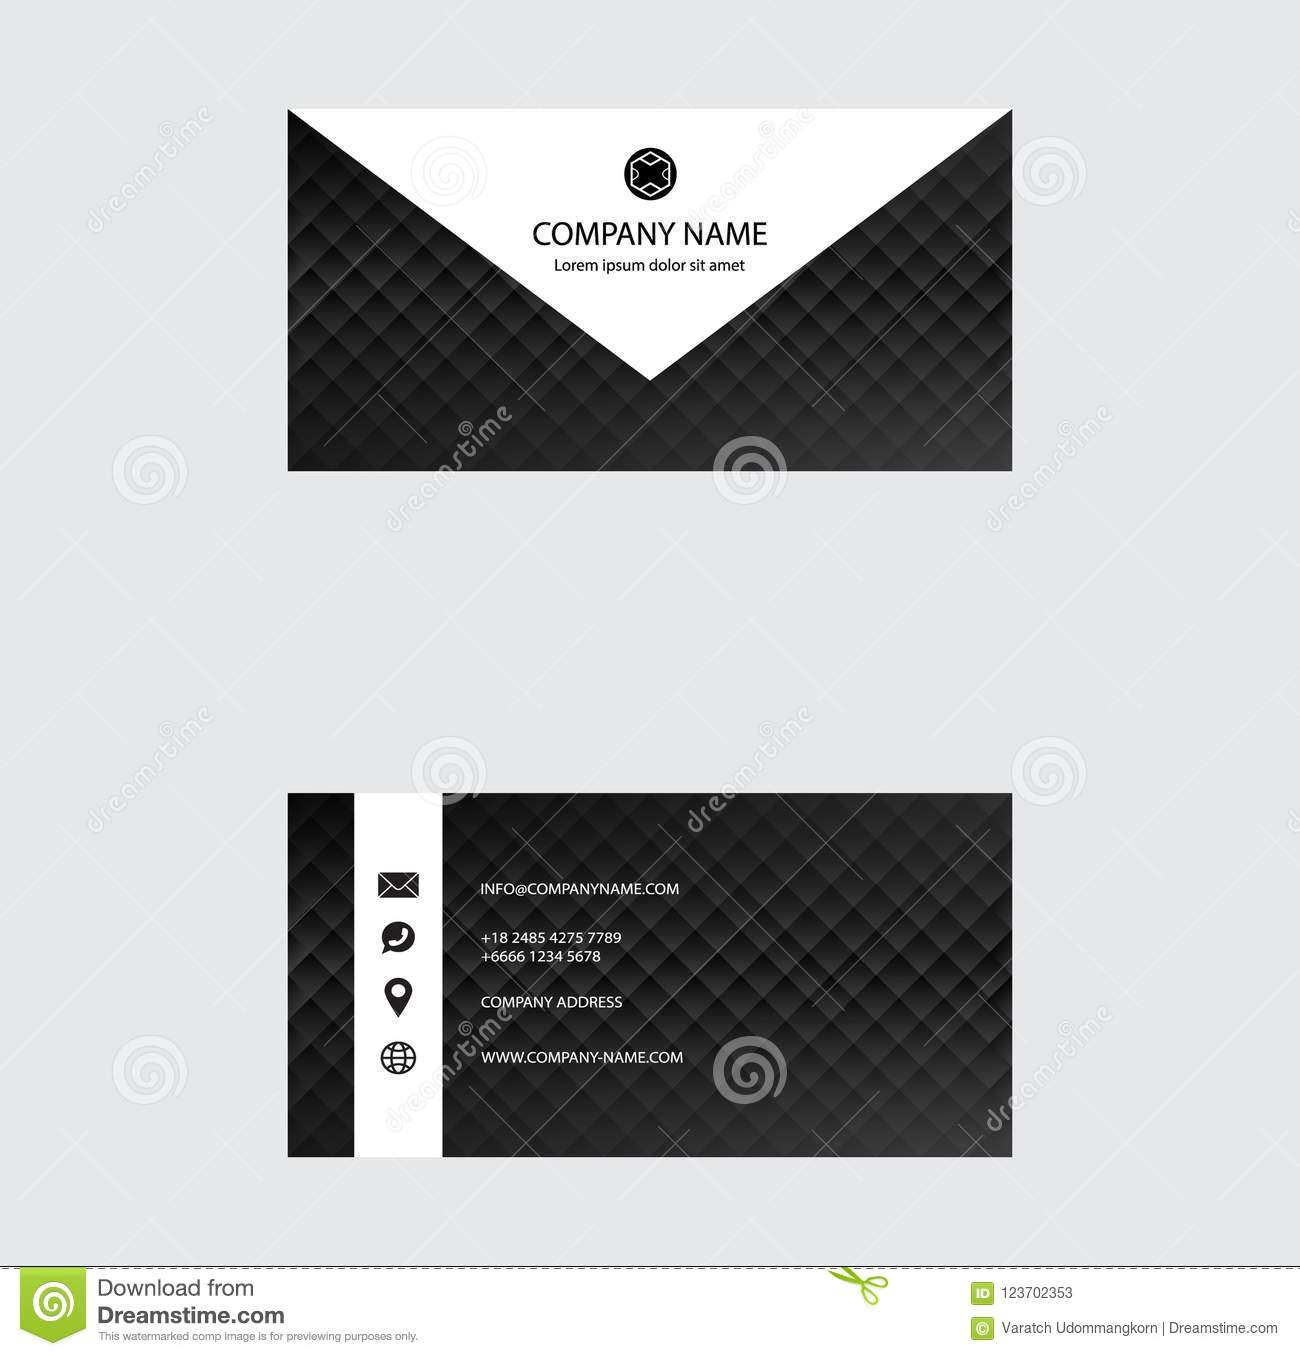 Set of Business Card Design, Black and White color, Contact card for company, Infographic. Abstract Modern Geometric Backgrounds